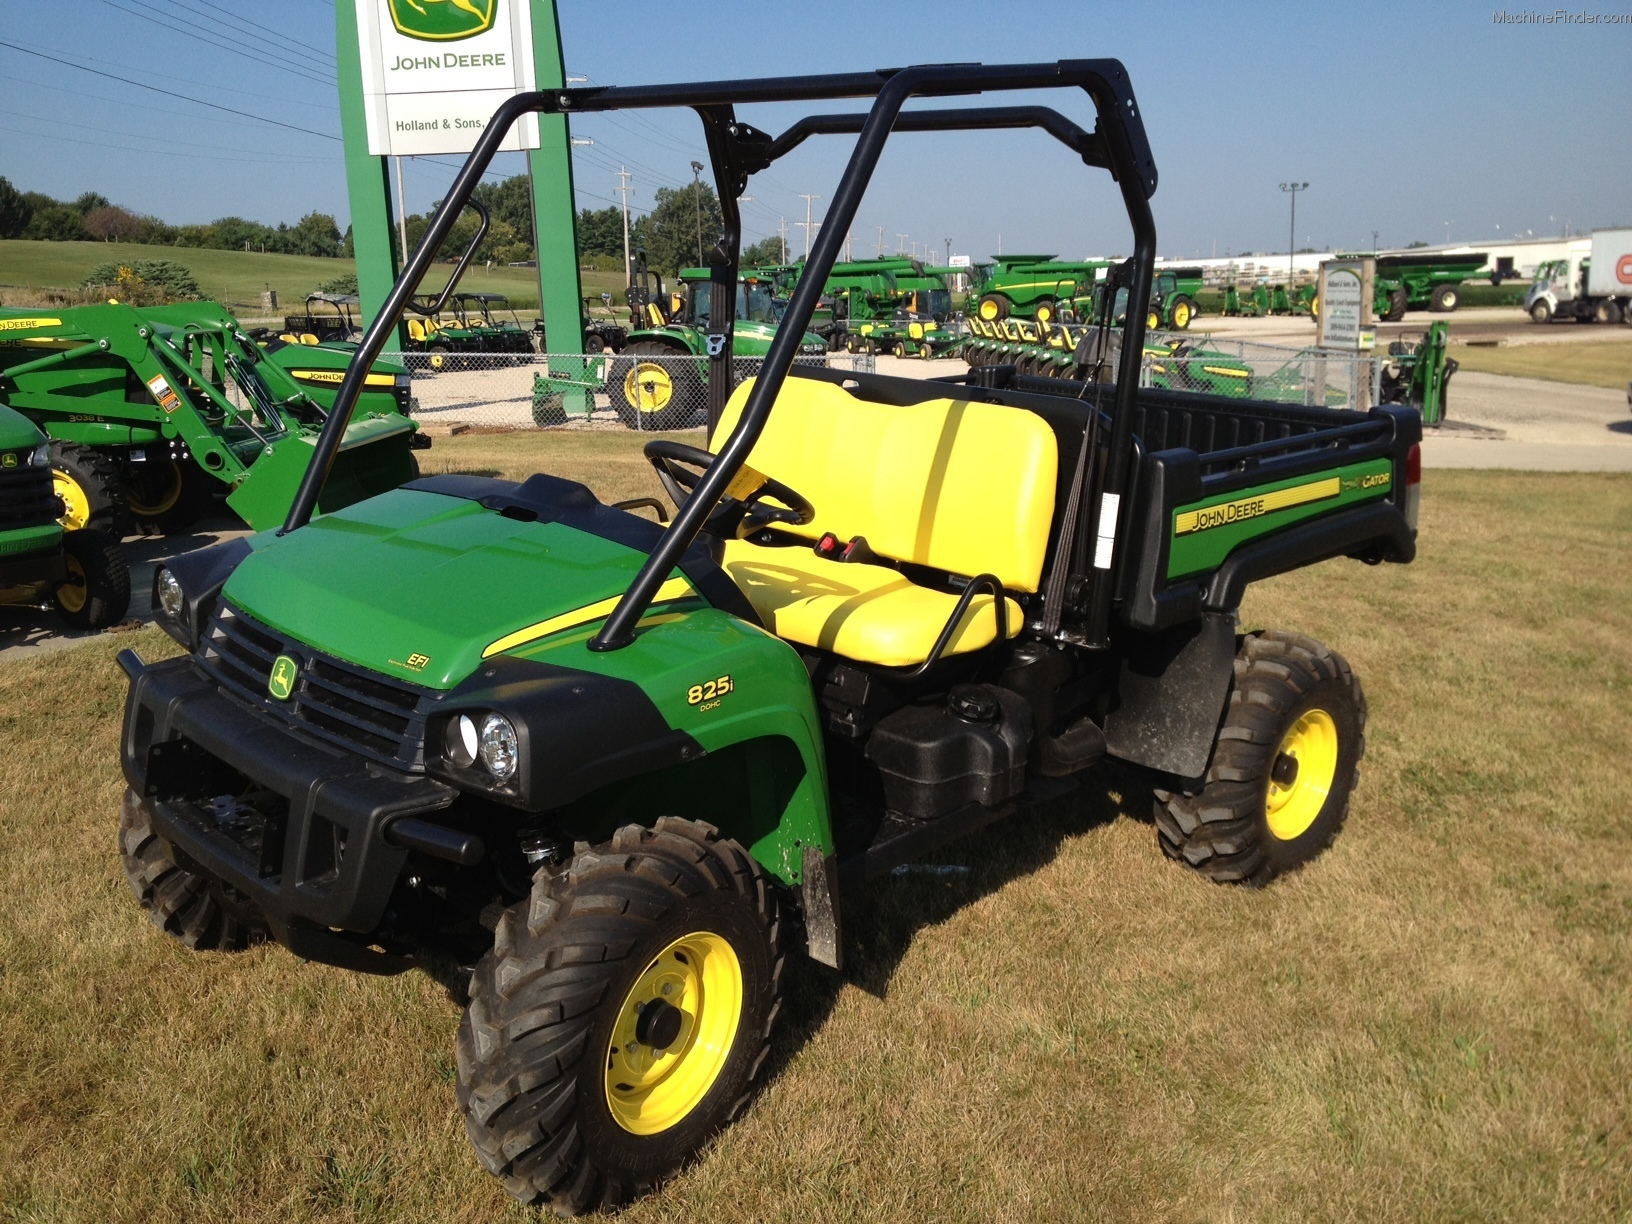 2013 john deere 825i atv 39 s and gators john deere machinefinder. Black Bedroom Furniture Sets. Home Design Ideas